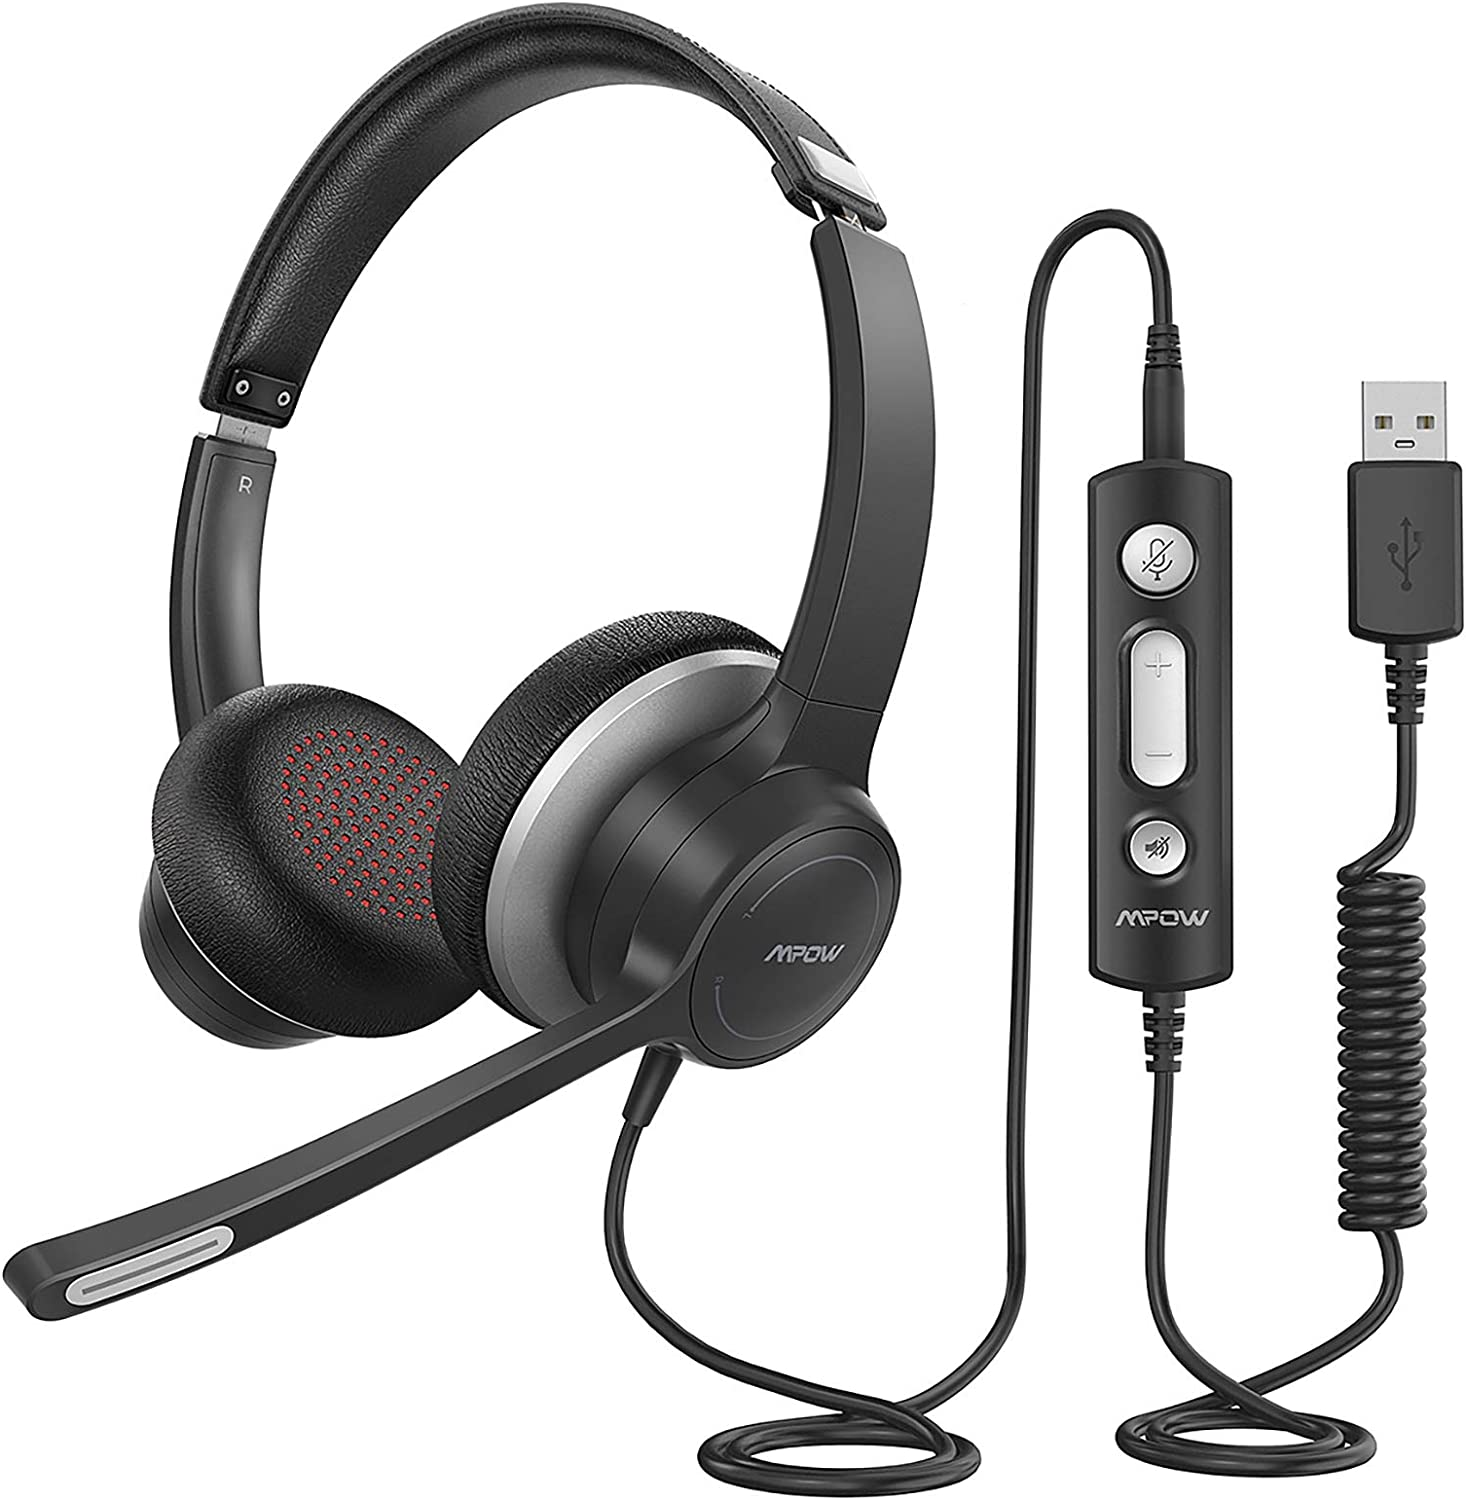 5 Headsets With Mic For Use in Video Calls